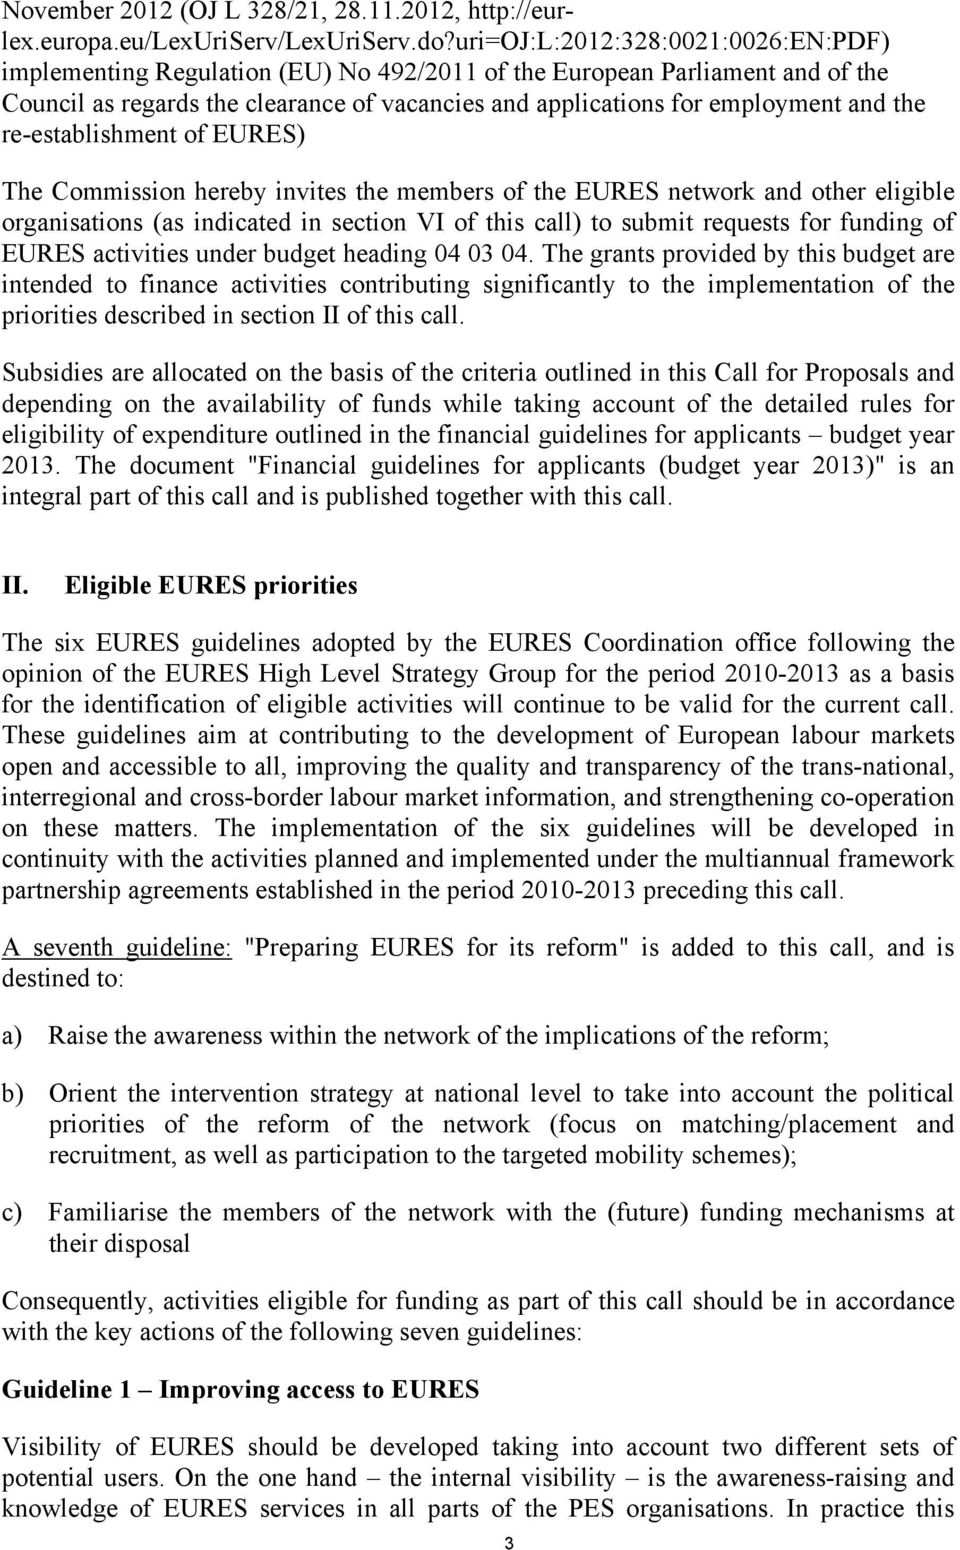 the re-establishment of EURES) The Commission hereby invites the members of the EURES network and other eligible organisations (as indicated in section VI of this call) to submit requests for funding